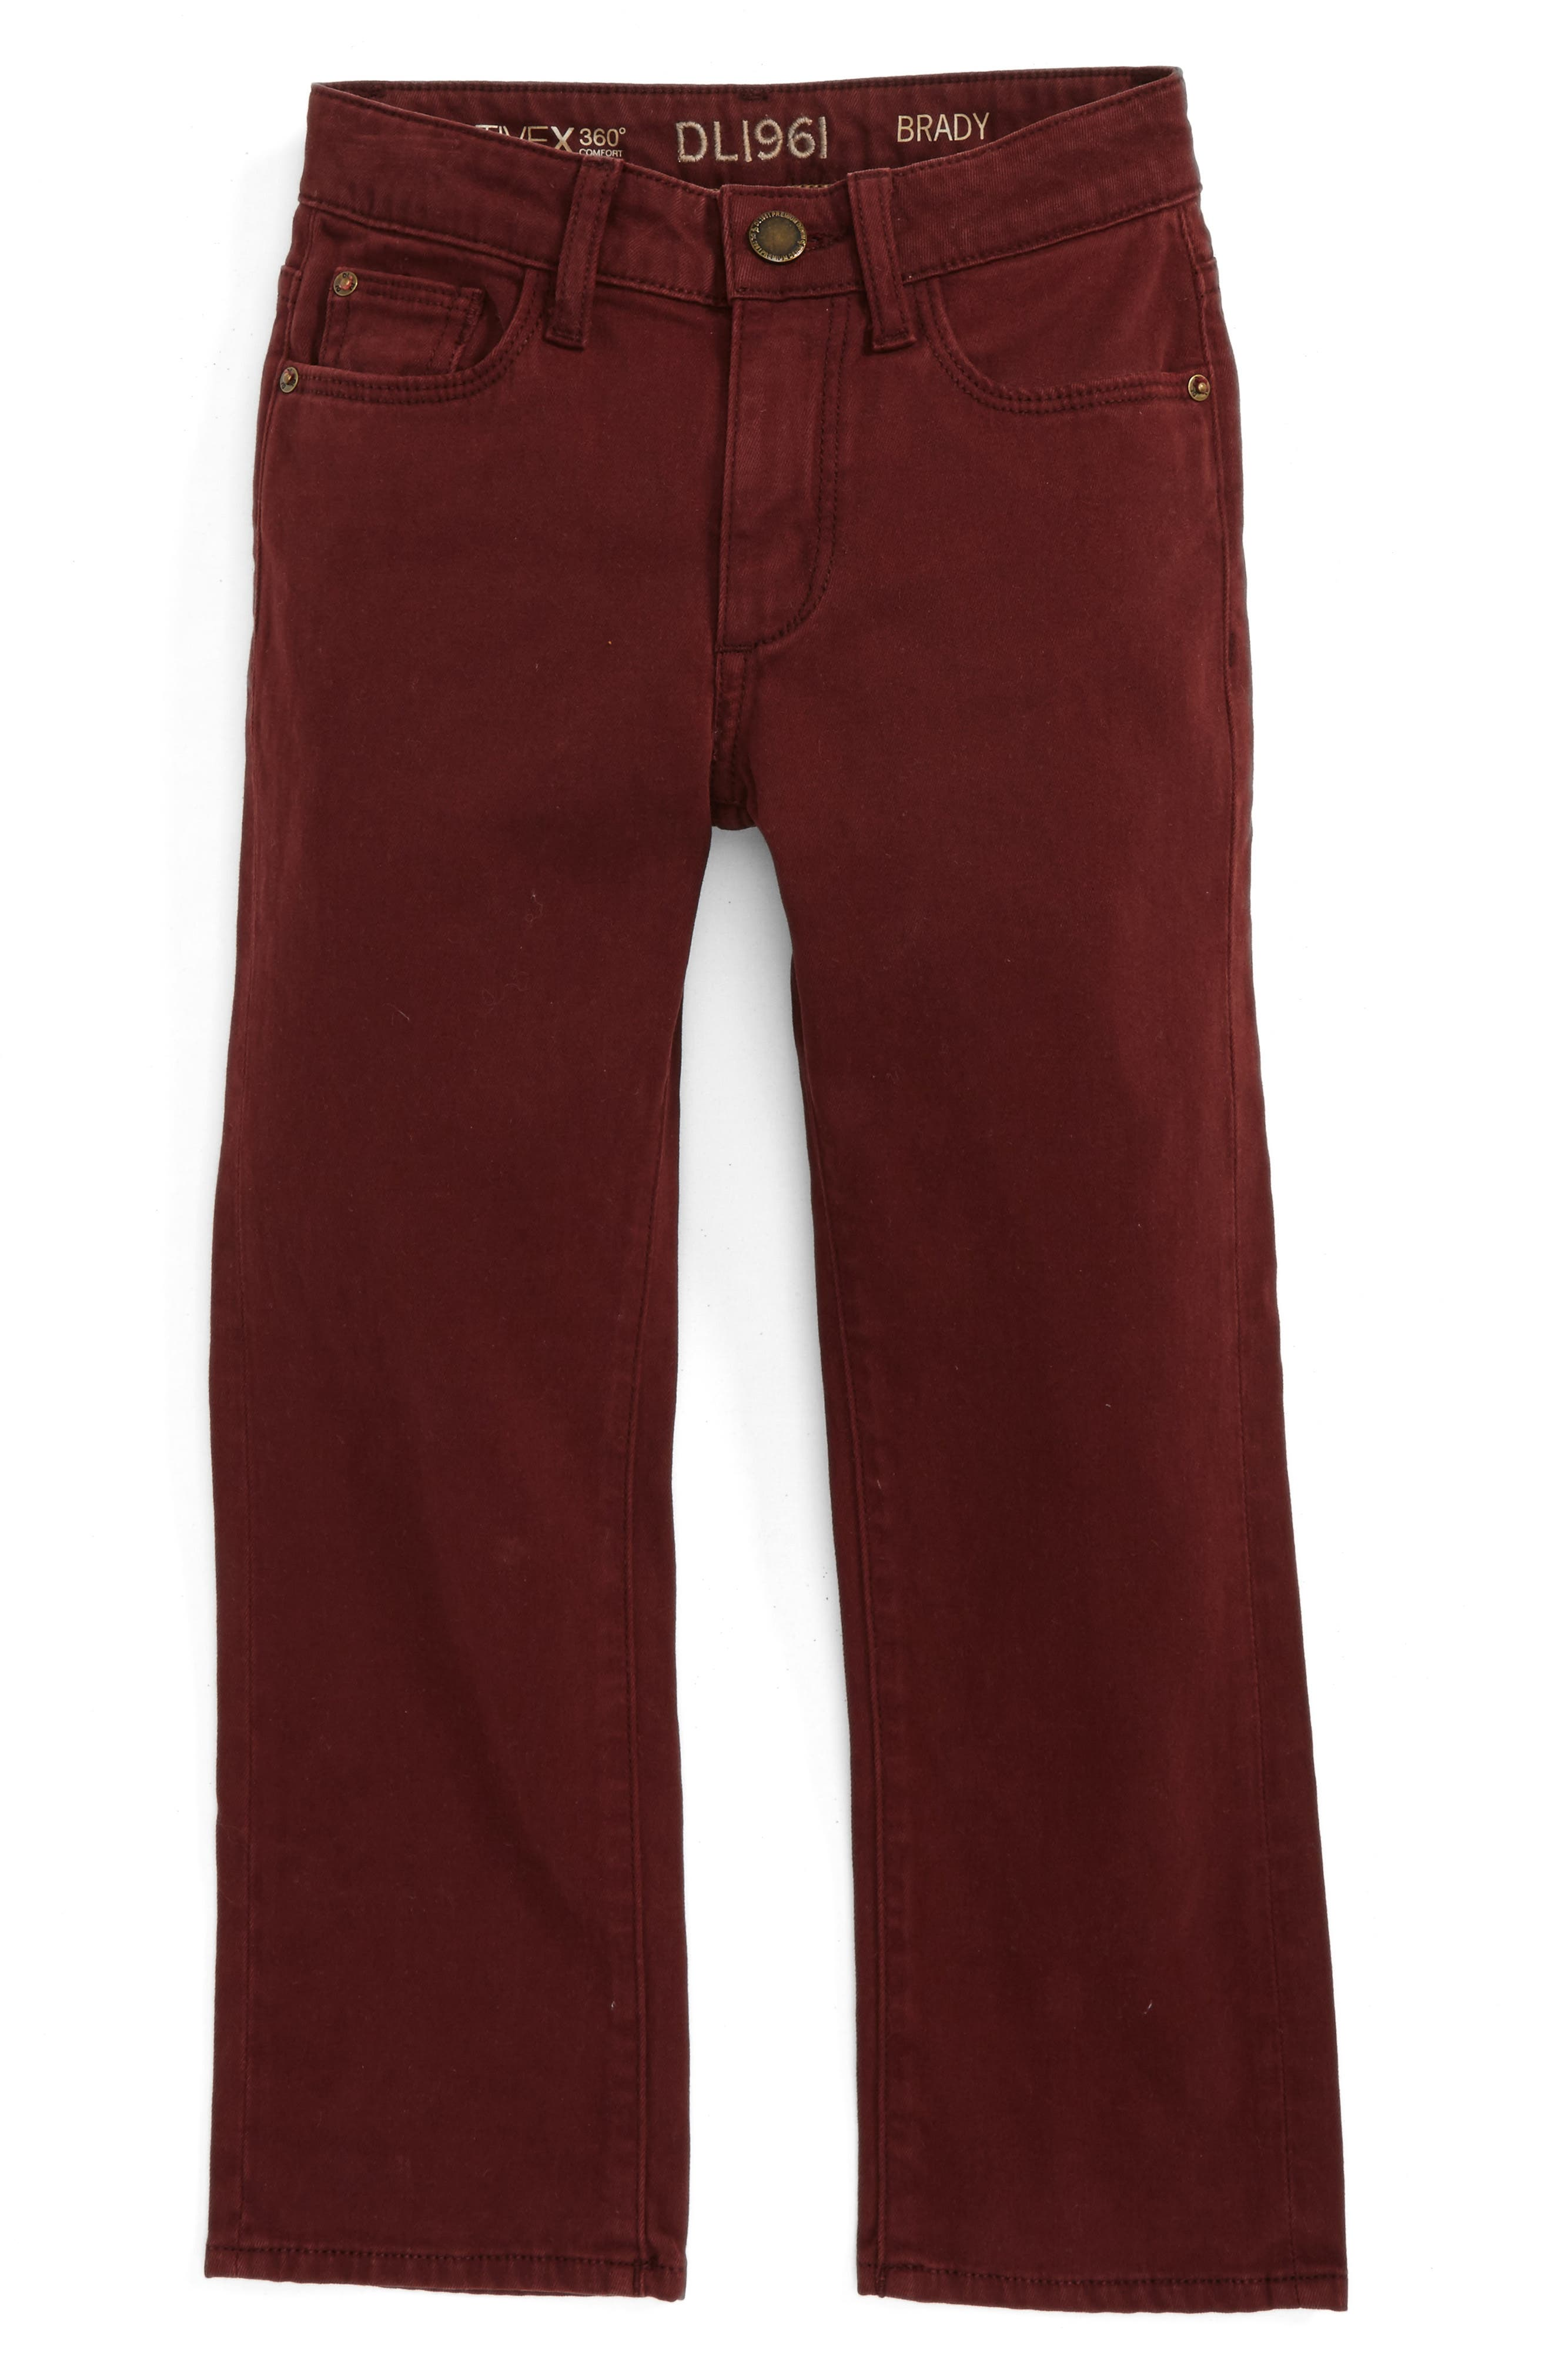 DL1961 Brady Slim Fit Twill Pants (Big Boys)